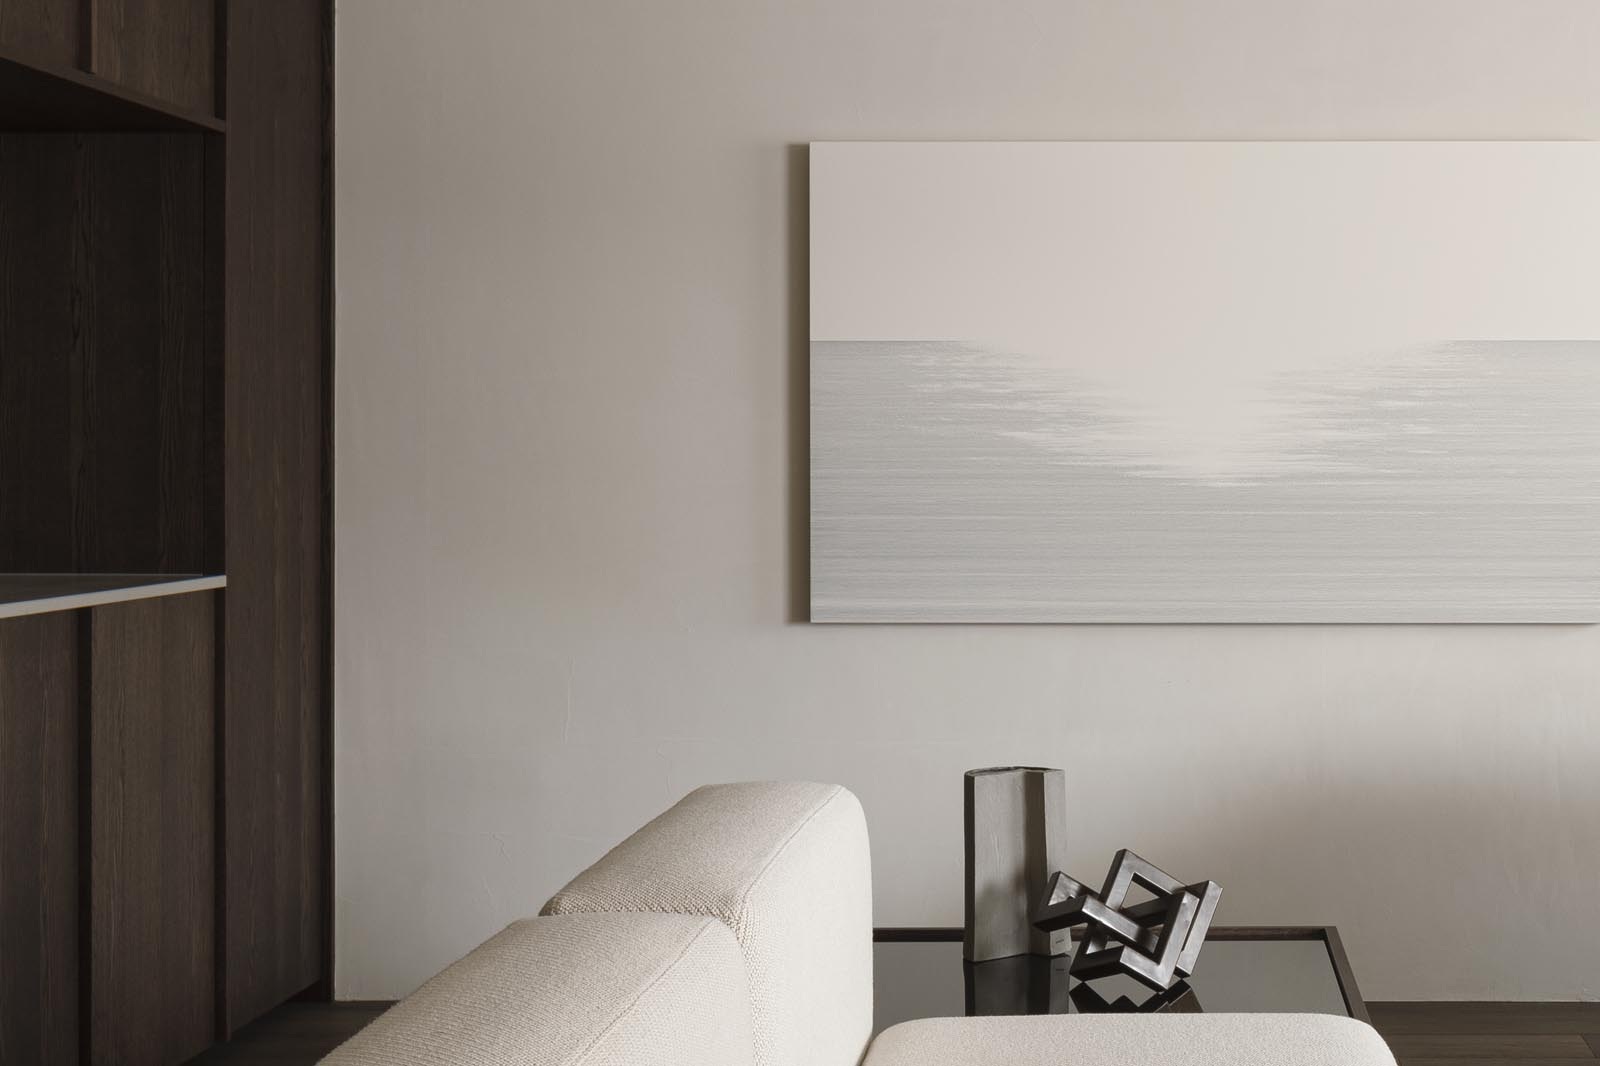 Minimalist Japandi living room with dark wooden panelling, beige sofa and neutral earthy tones | These Four Walls blog